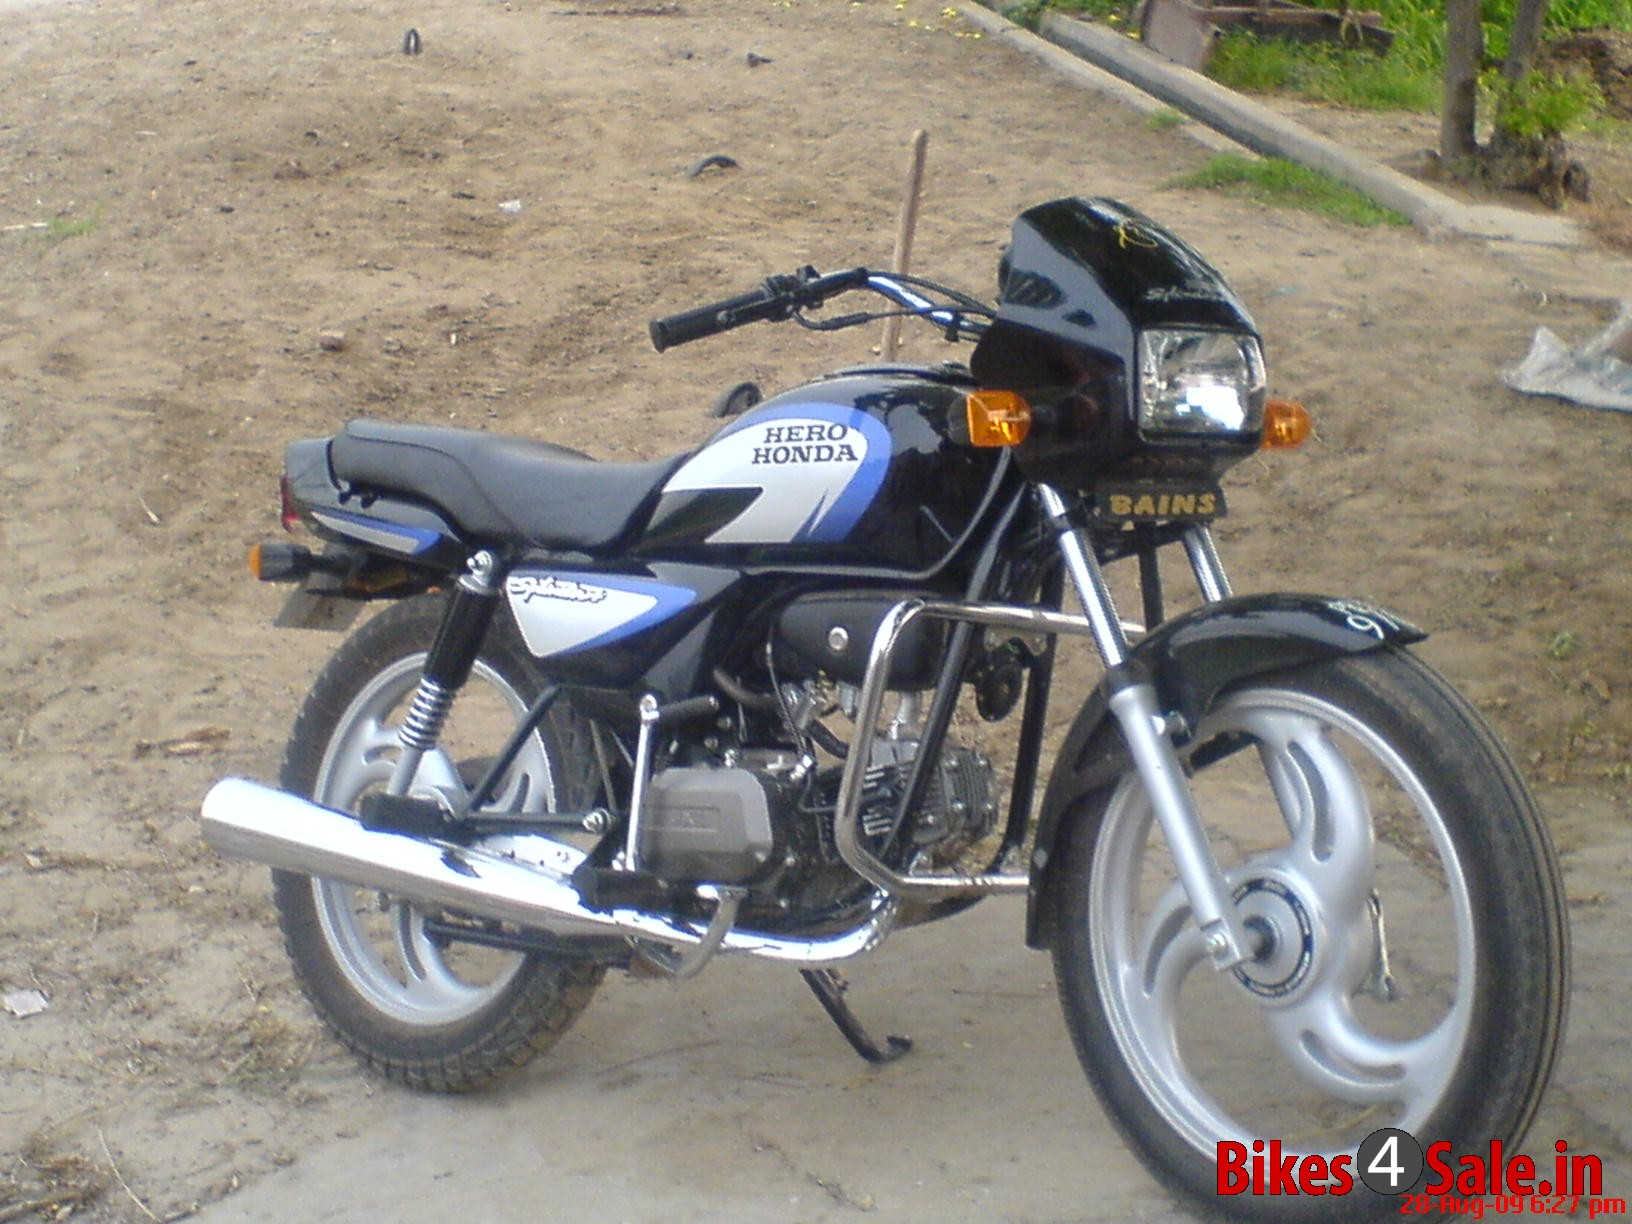 Hero Honda Splendor 2007 images #95896